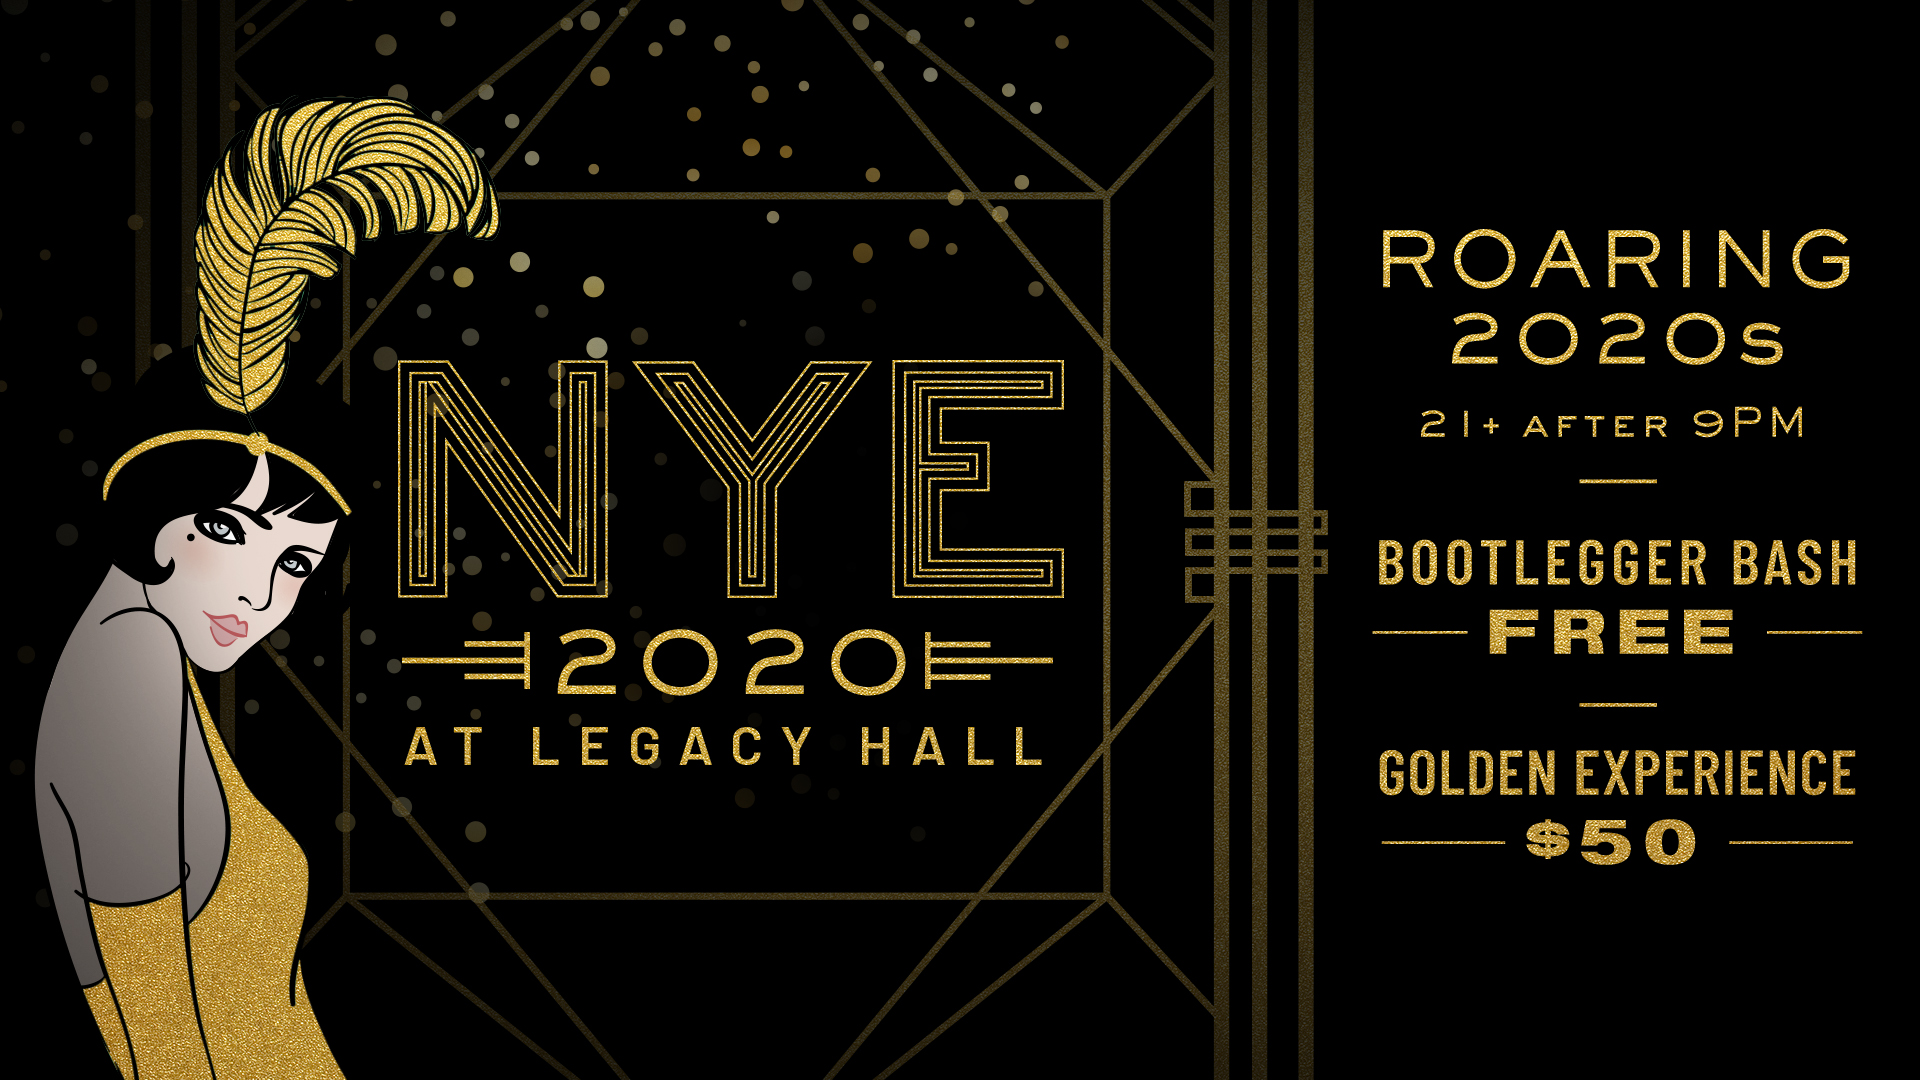 Roaring 2020s NYE at Legacy Hall